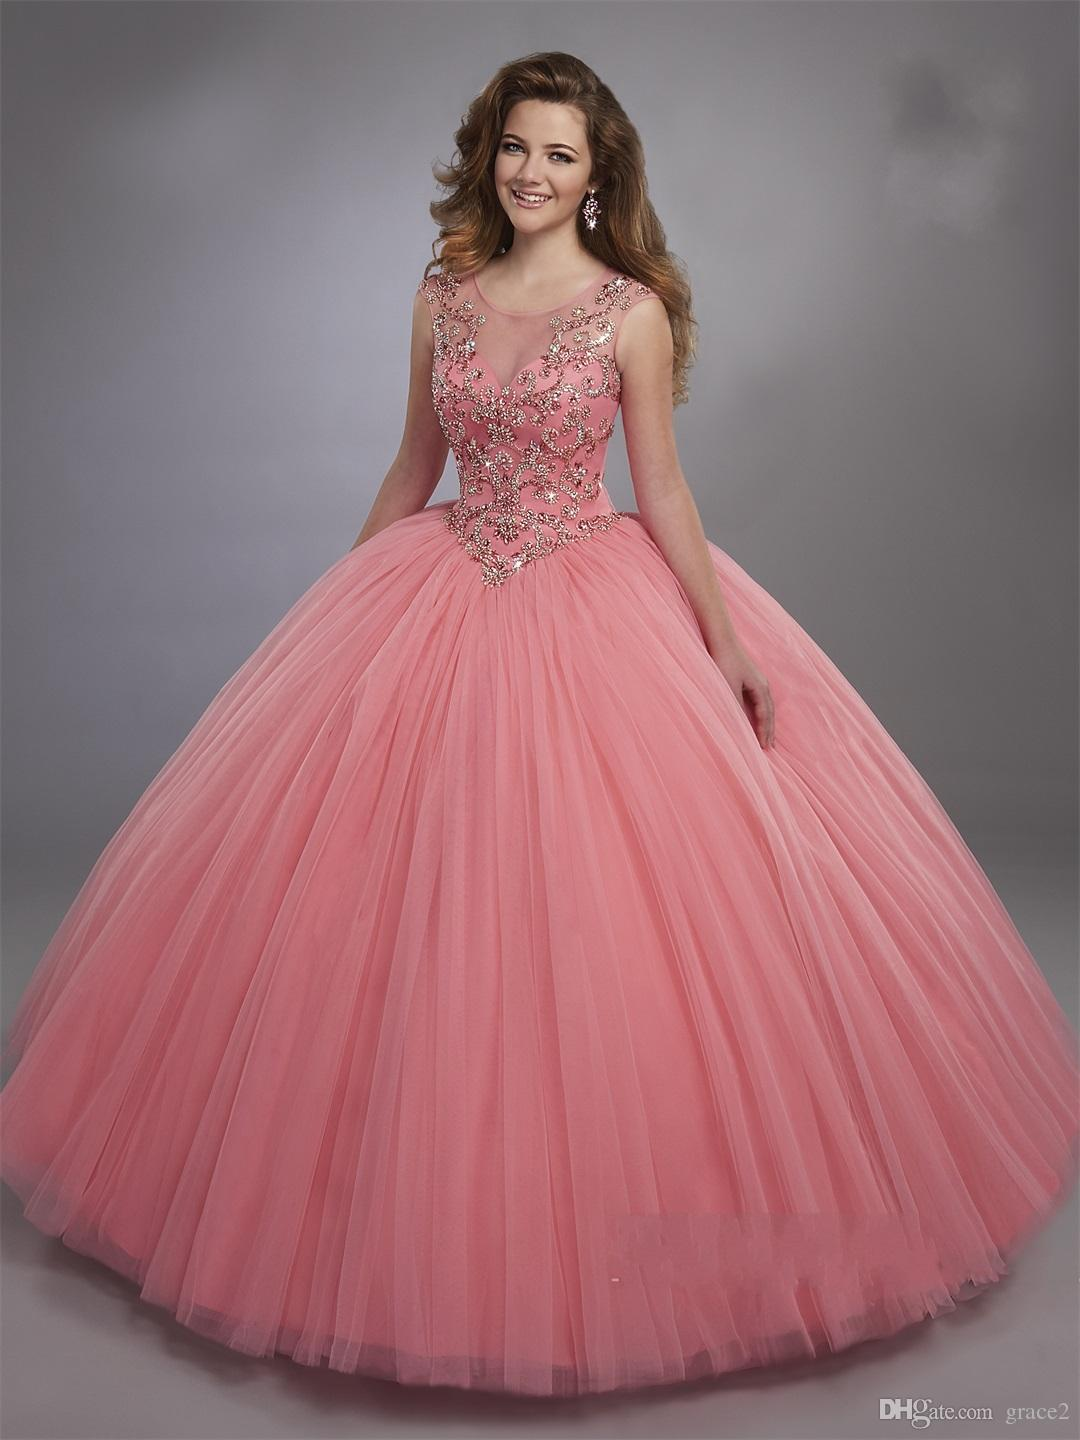 80244f9732f ... Neck And Basque Waistline Pink Sweet 16 Dress with Zipper Back Custom  Made Vestidos De 15 Anos Quinceanera Dresses 2017 2 Piece Quinceanera  Dresses ...